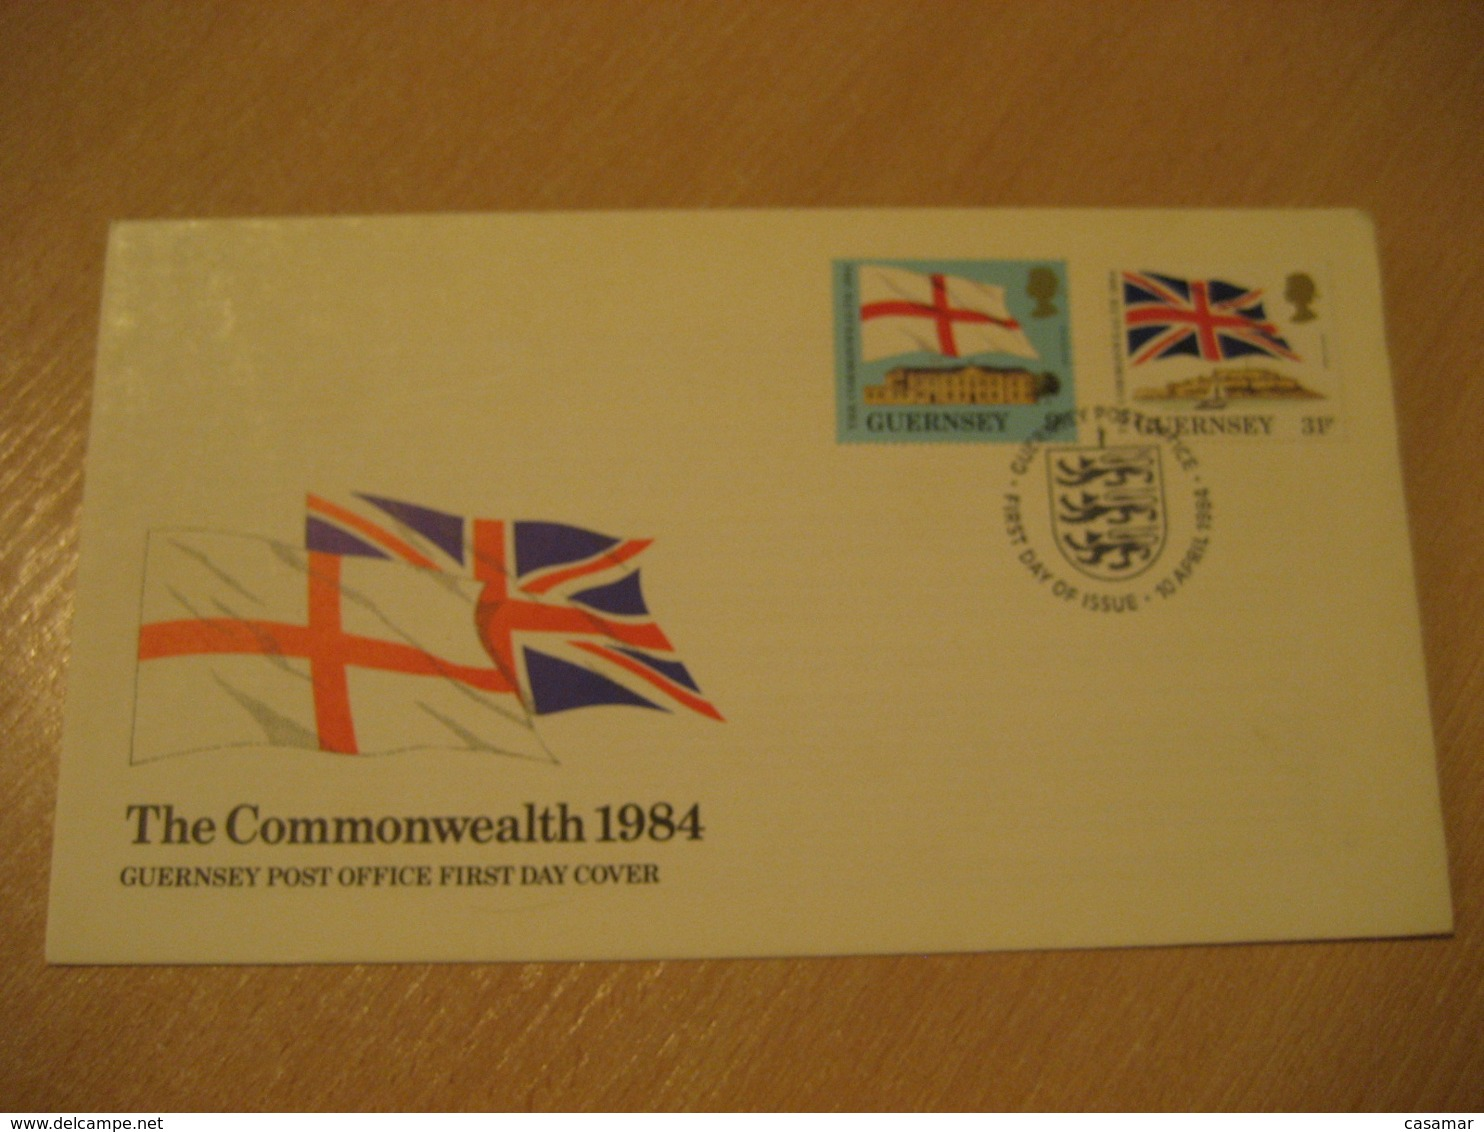 GUERNSEY 1984 The Commonwealth Flag Flags FDC Cancel Cover CHANNEL ISLANDS - Omslagen